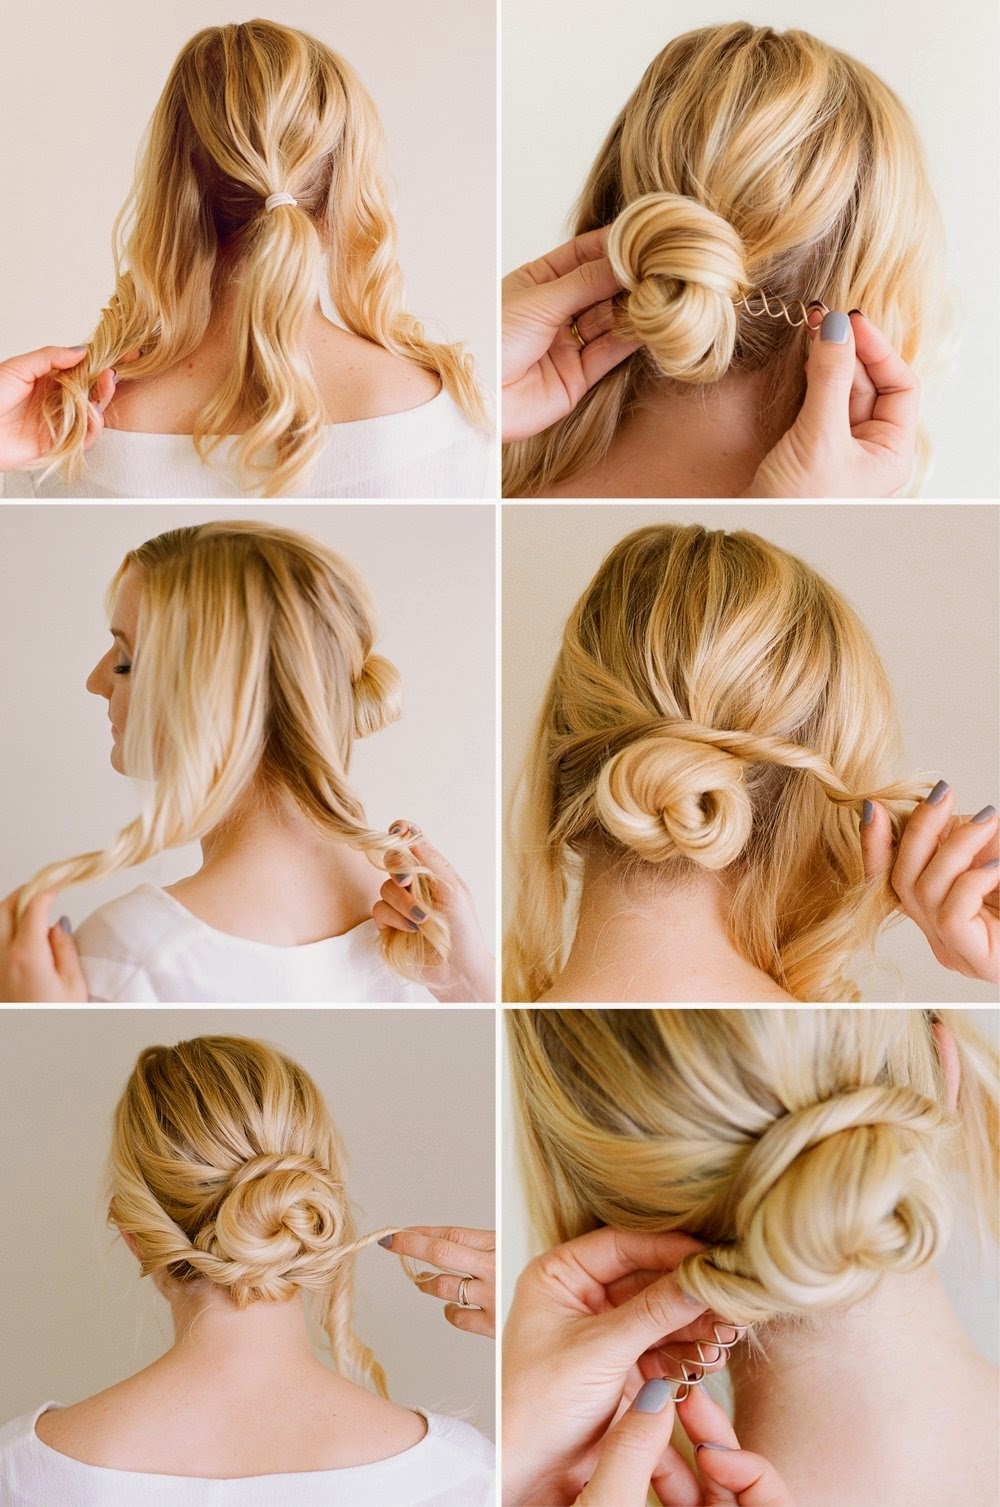 5 Elegant Hairstyles For Special Occasions